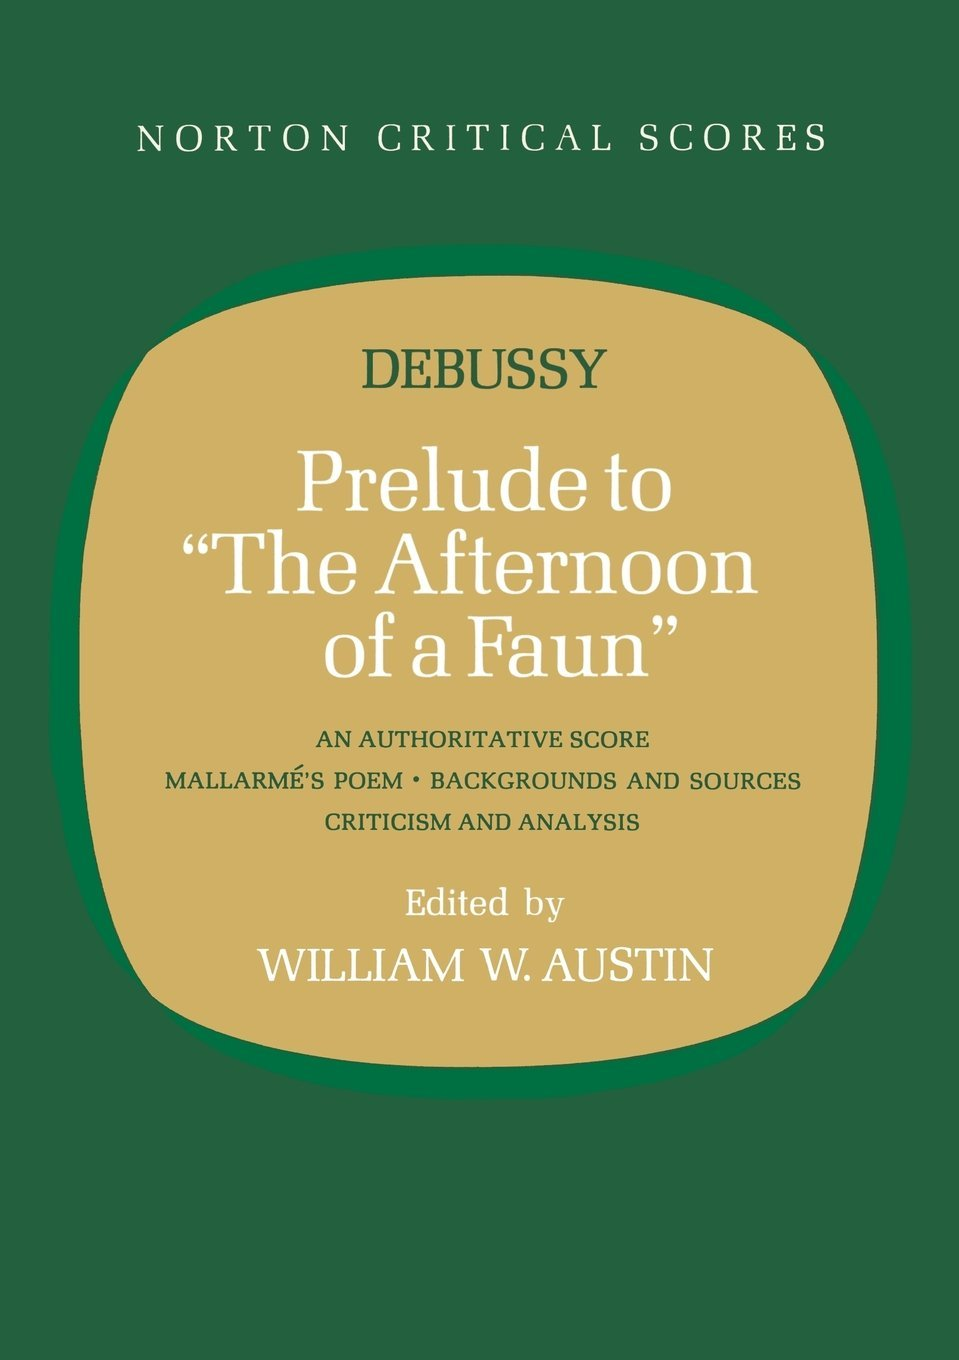 Buy Prelude to the Afternoon of a Faun (Norton Critical Scores) Book Online  at Low Prices in India | Prelude to the Afternoon of a Faun (Norton Critical  ...